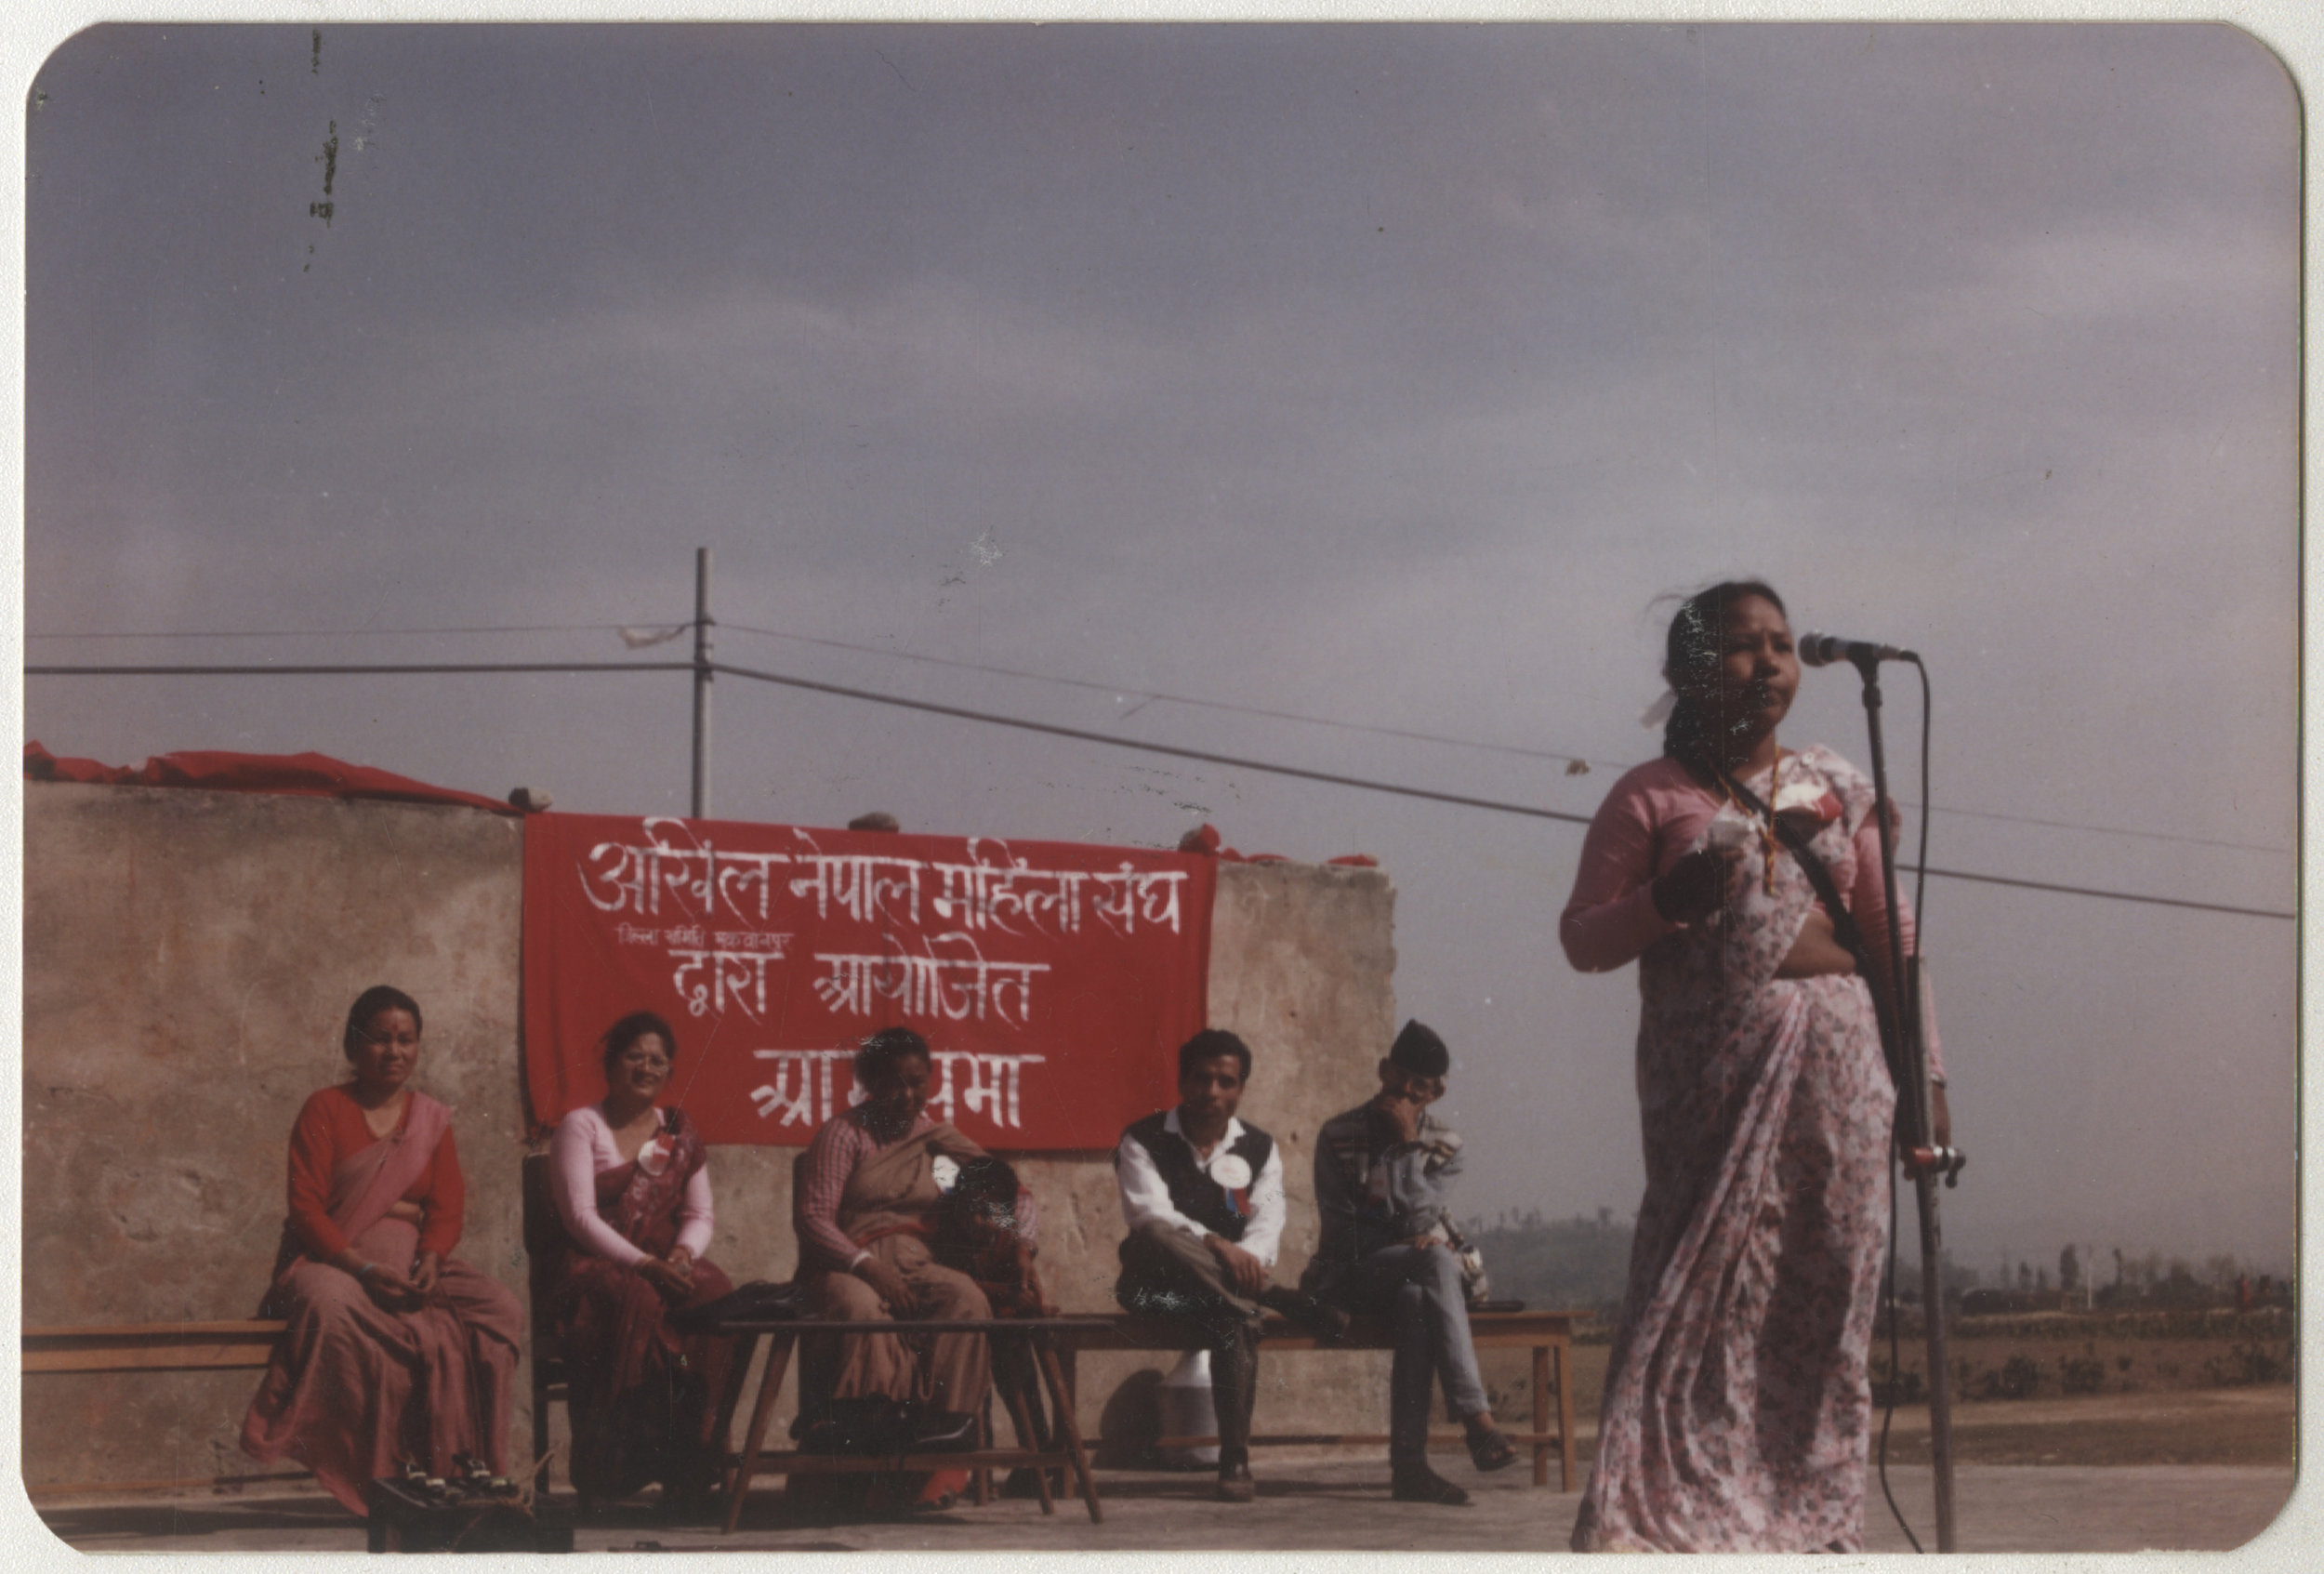 The Feminist Memory Project  by the Nepal Picture Library seeks to create a visual archive of women's movements in Nepal. Through gathered archival photographs, other ephemera, and oral histories from around Nepal that capture women in pivotal moments of Nepali history, it consolidates contributions made by pioneering figures who remain marginalized in our male dominated historiographies.